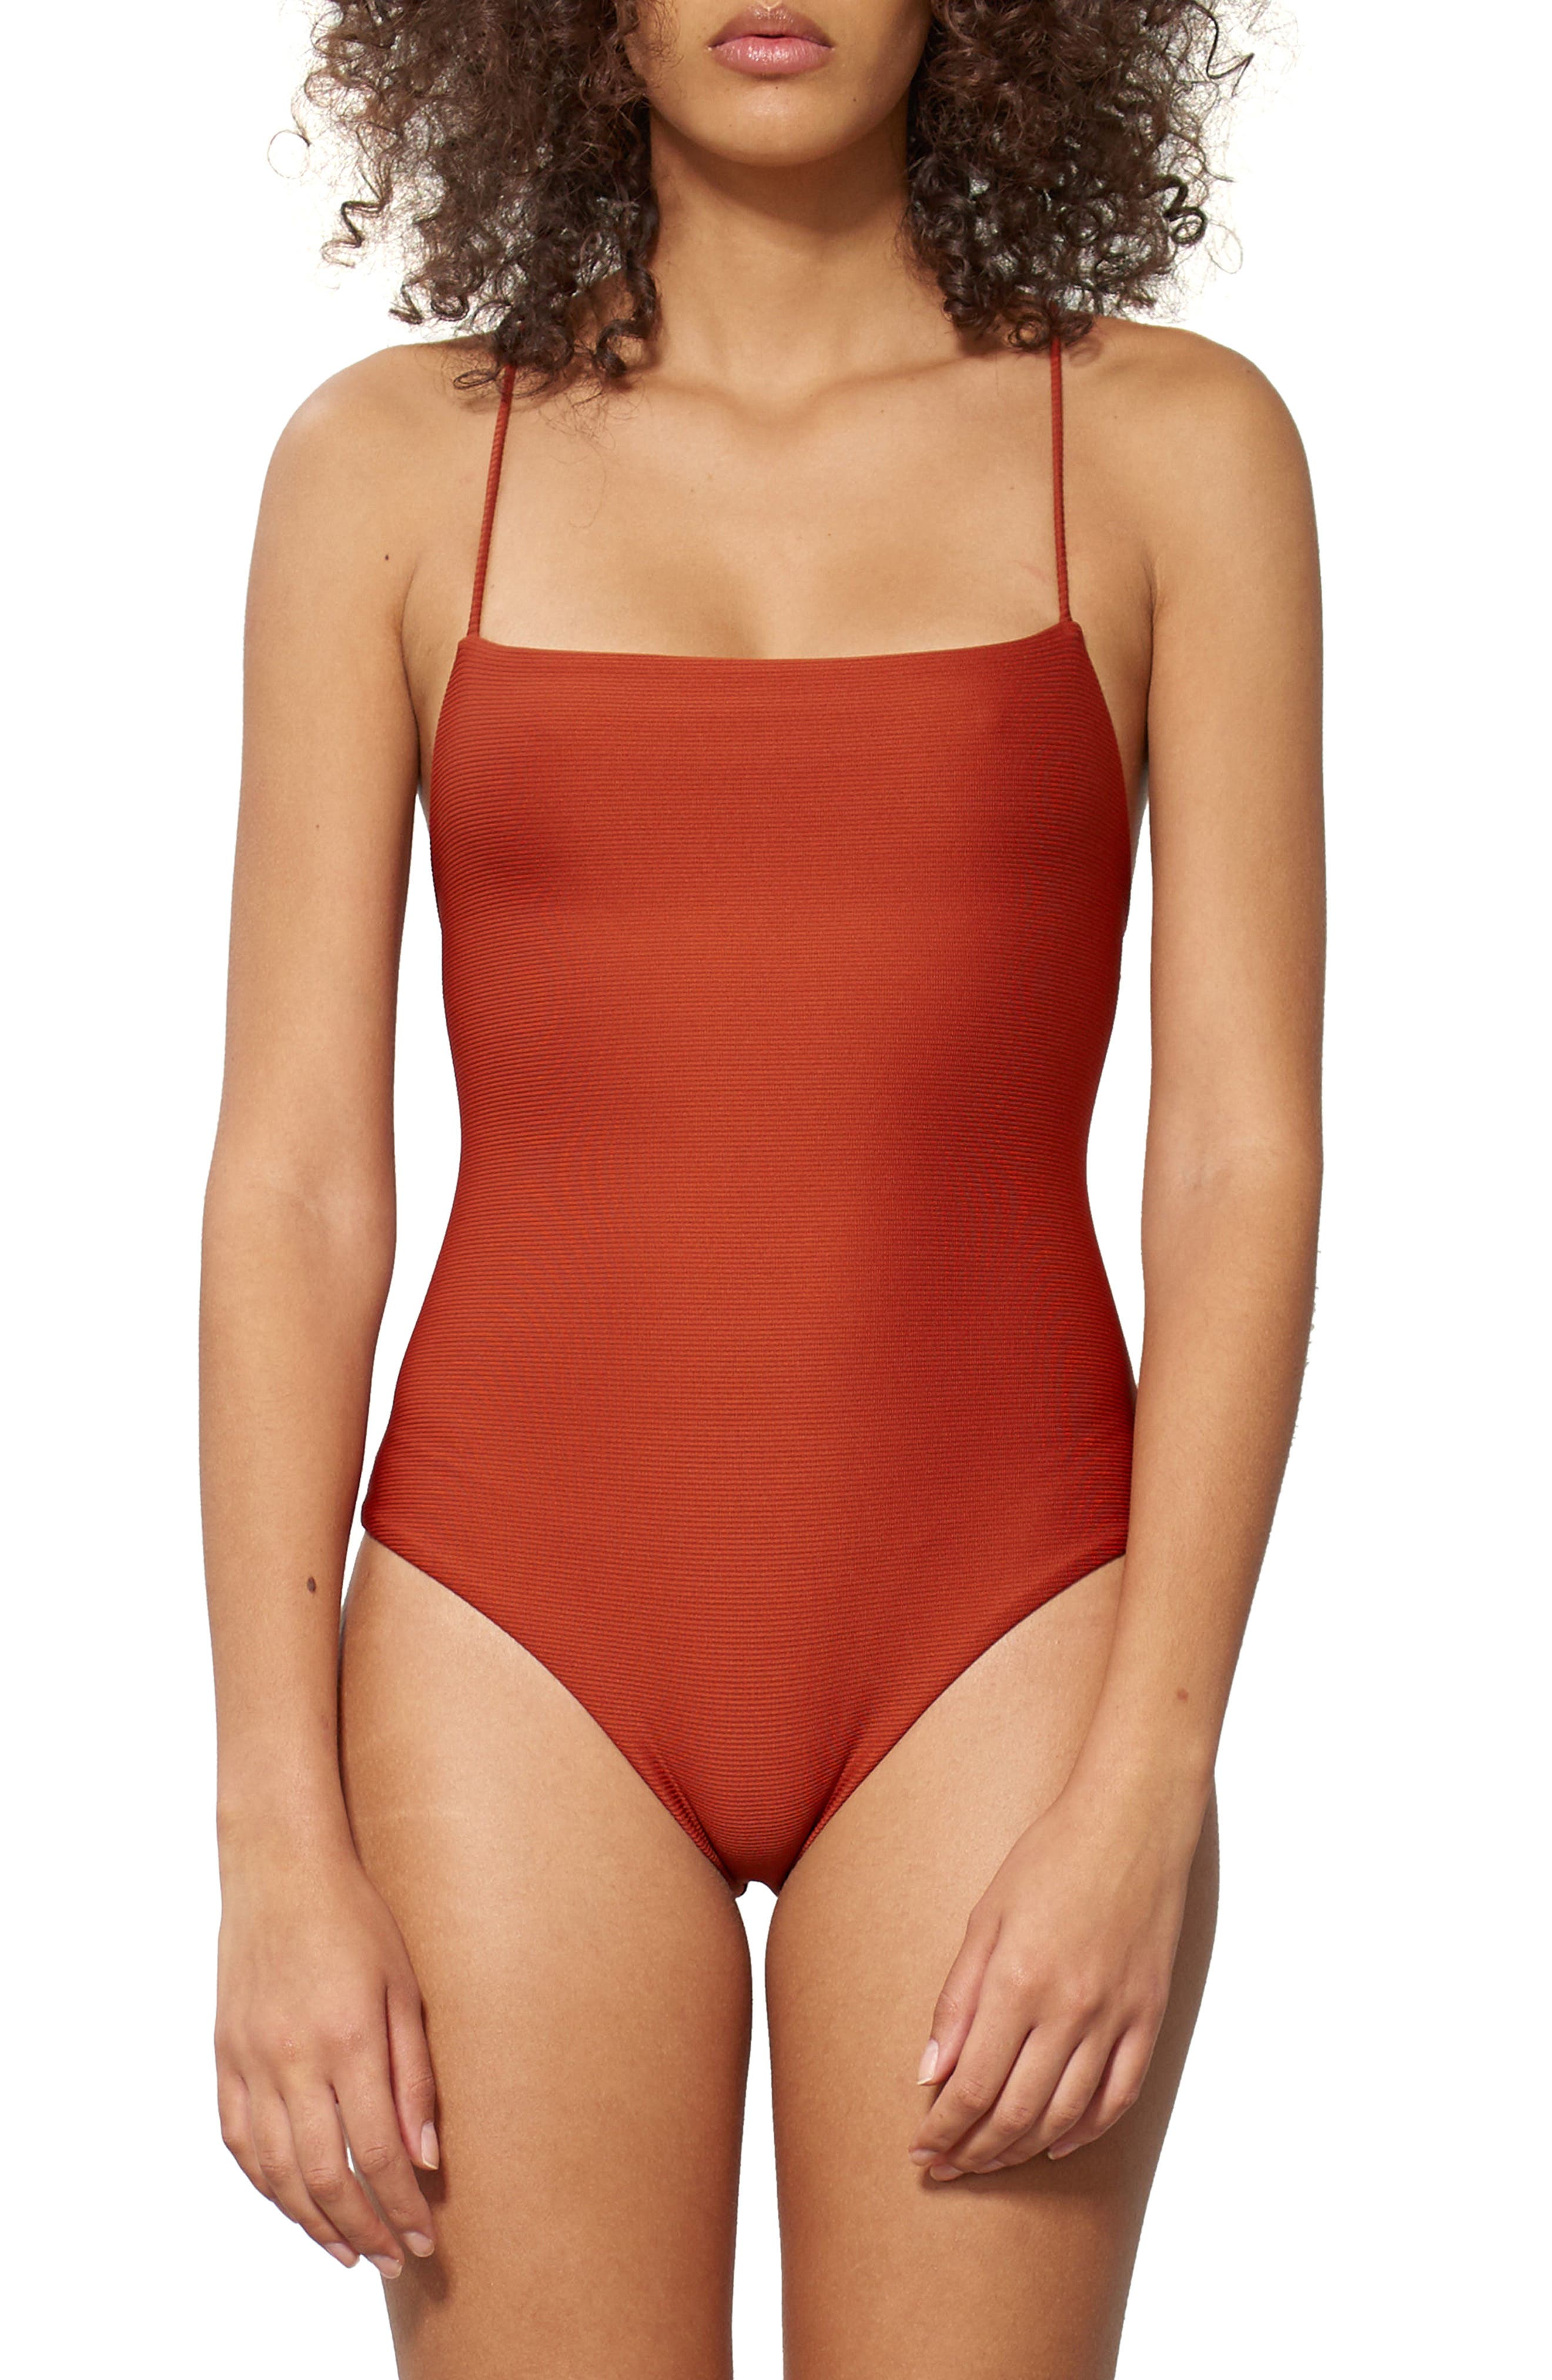 Olympia One-Piece Swimsuit,                         Main,                         color, Rust